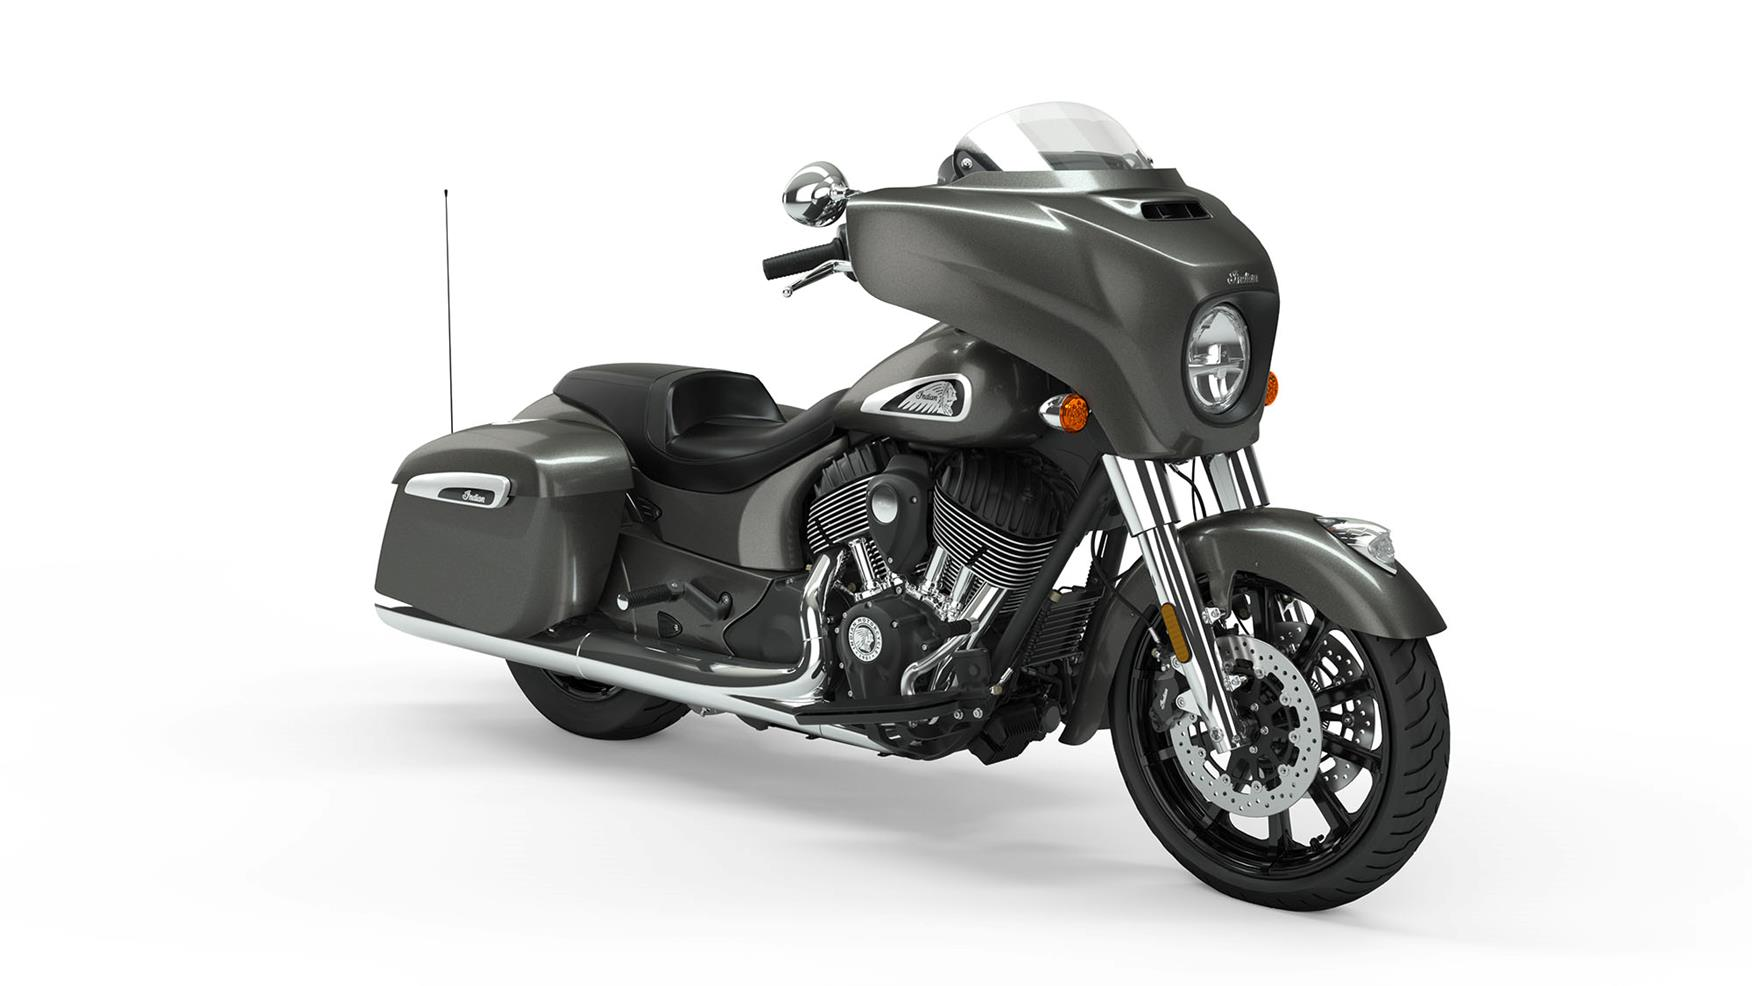 2019 Indian Chieftain in Steel Gray